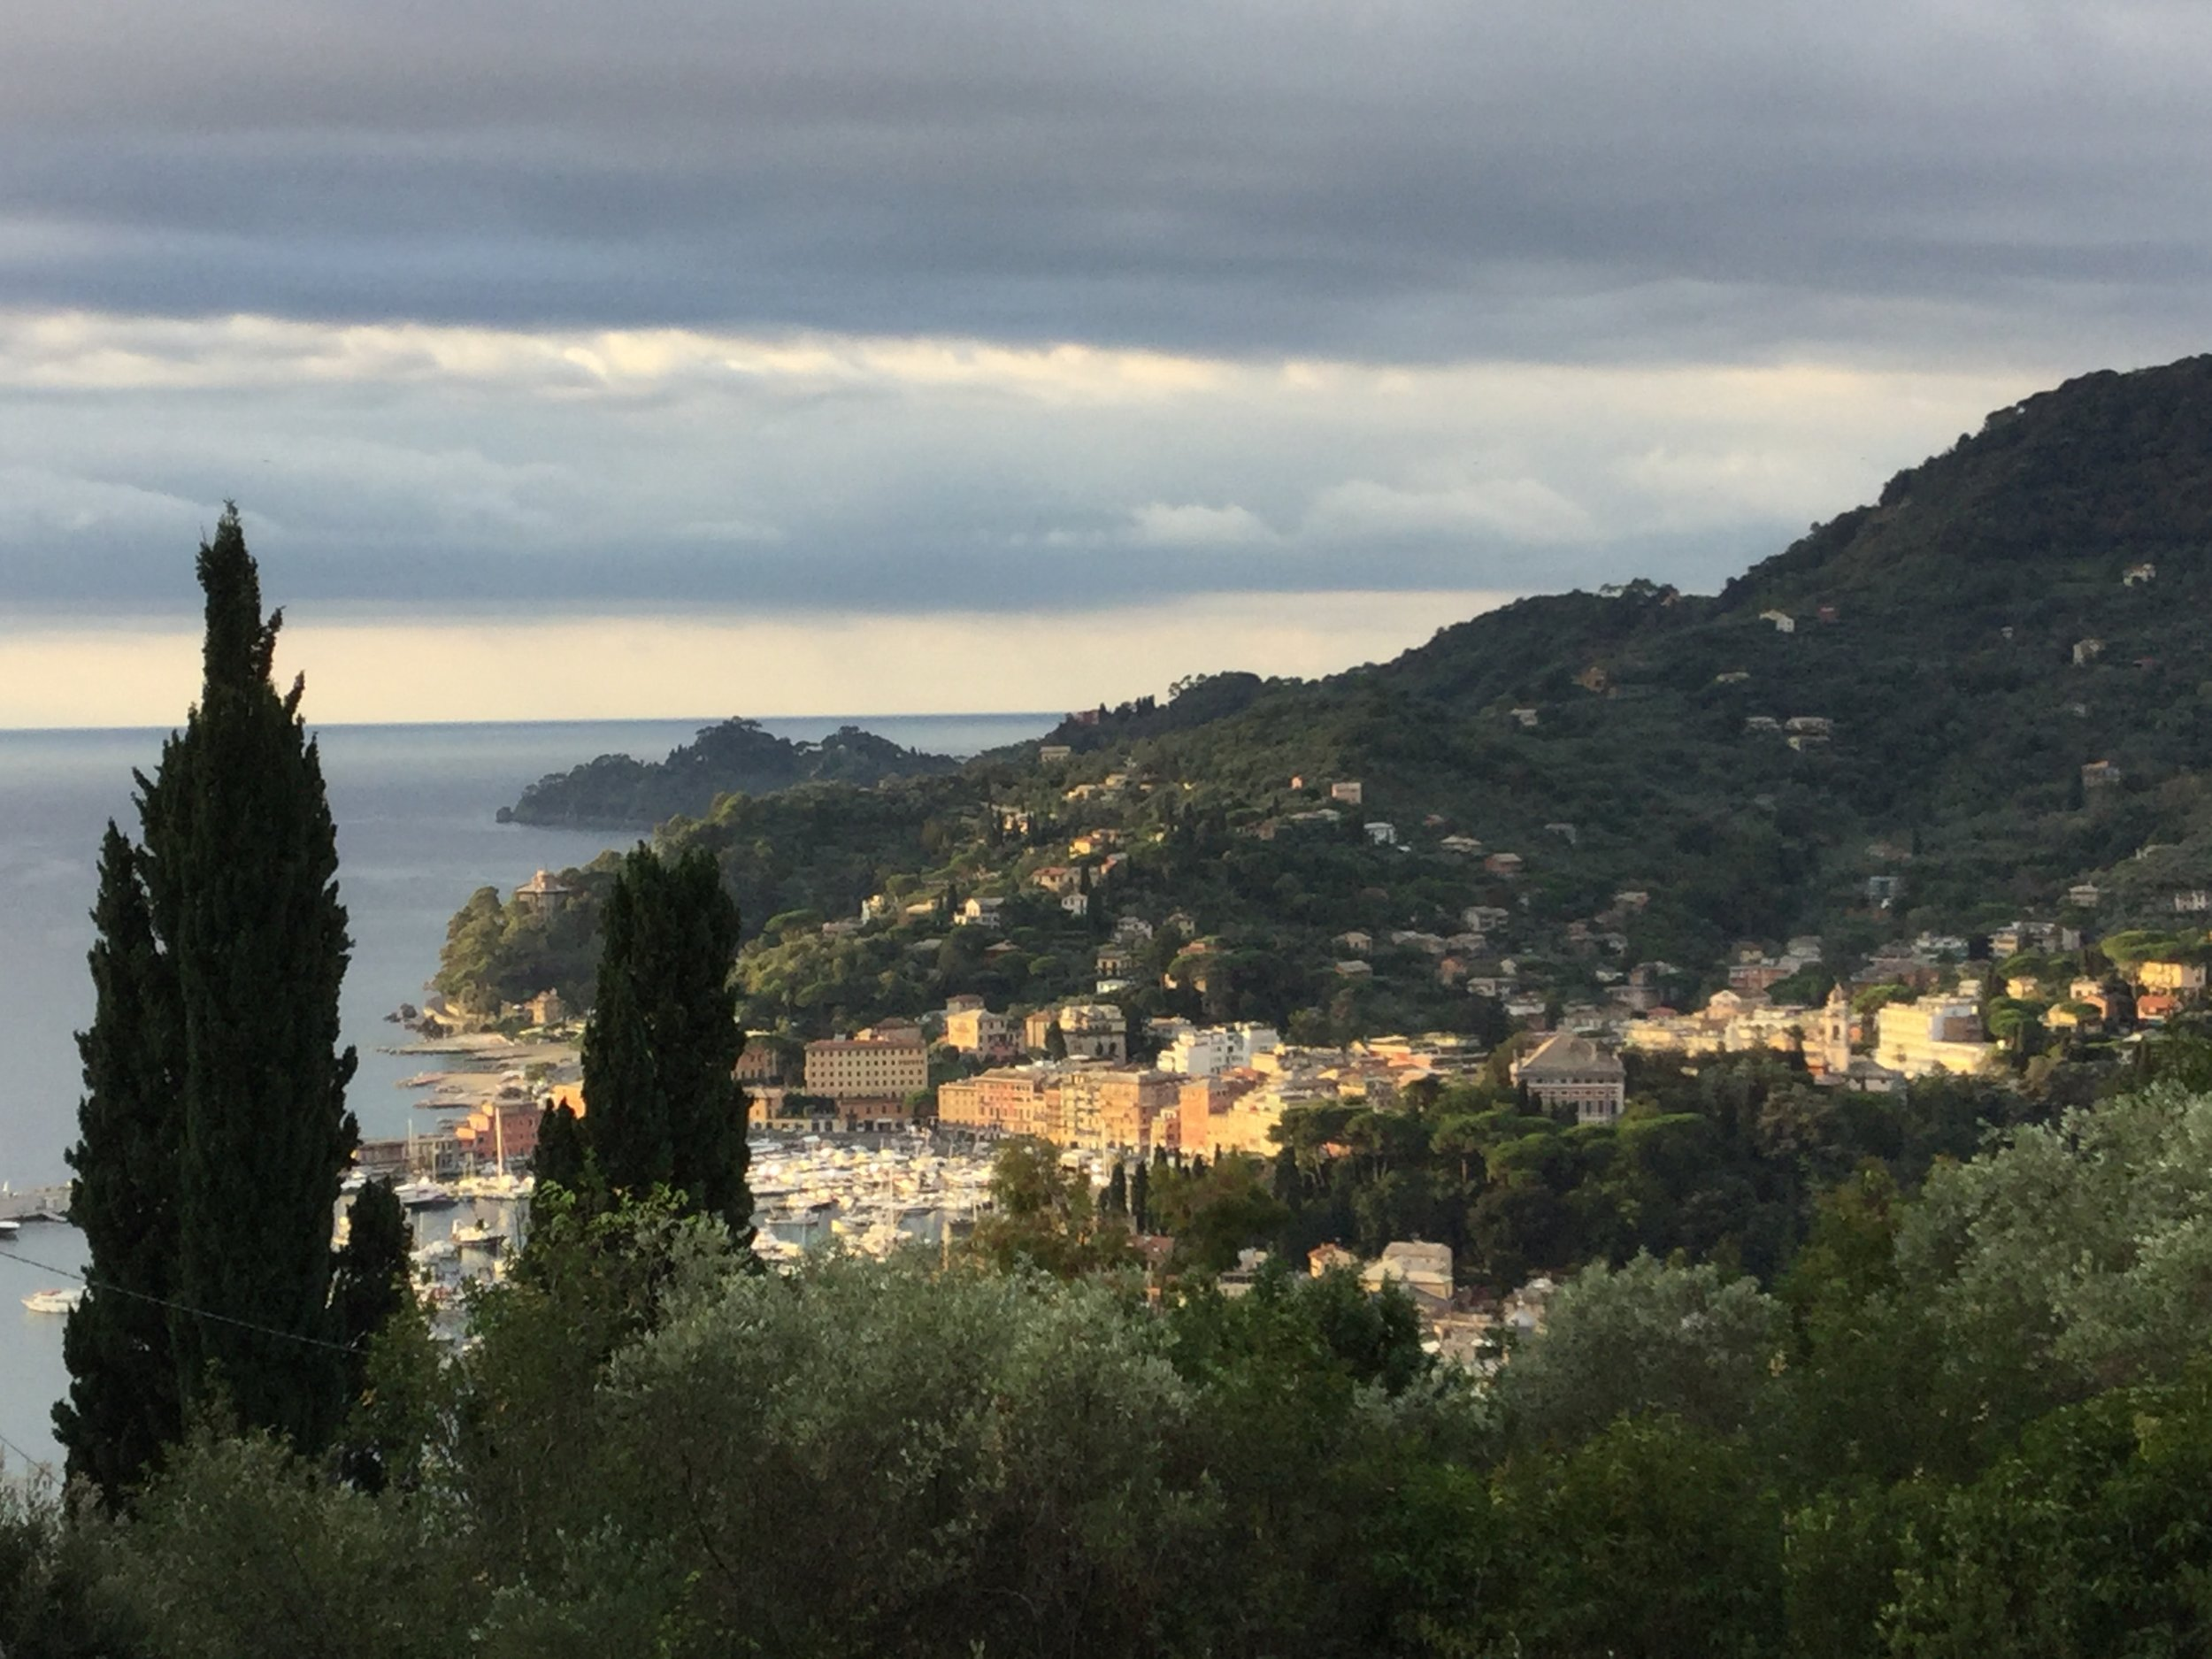 View from our bedroom window at the house we're renting in Santa Margherita